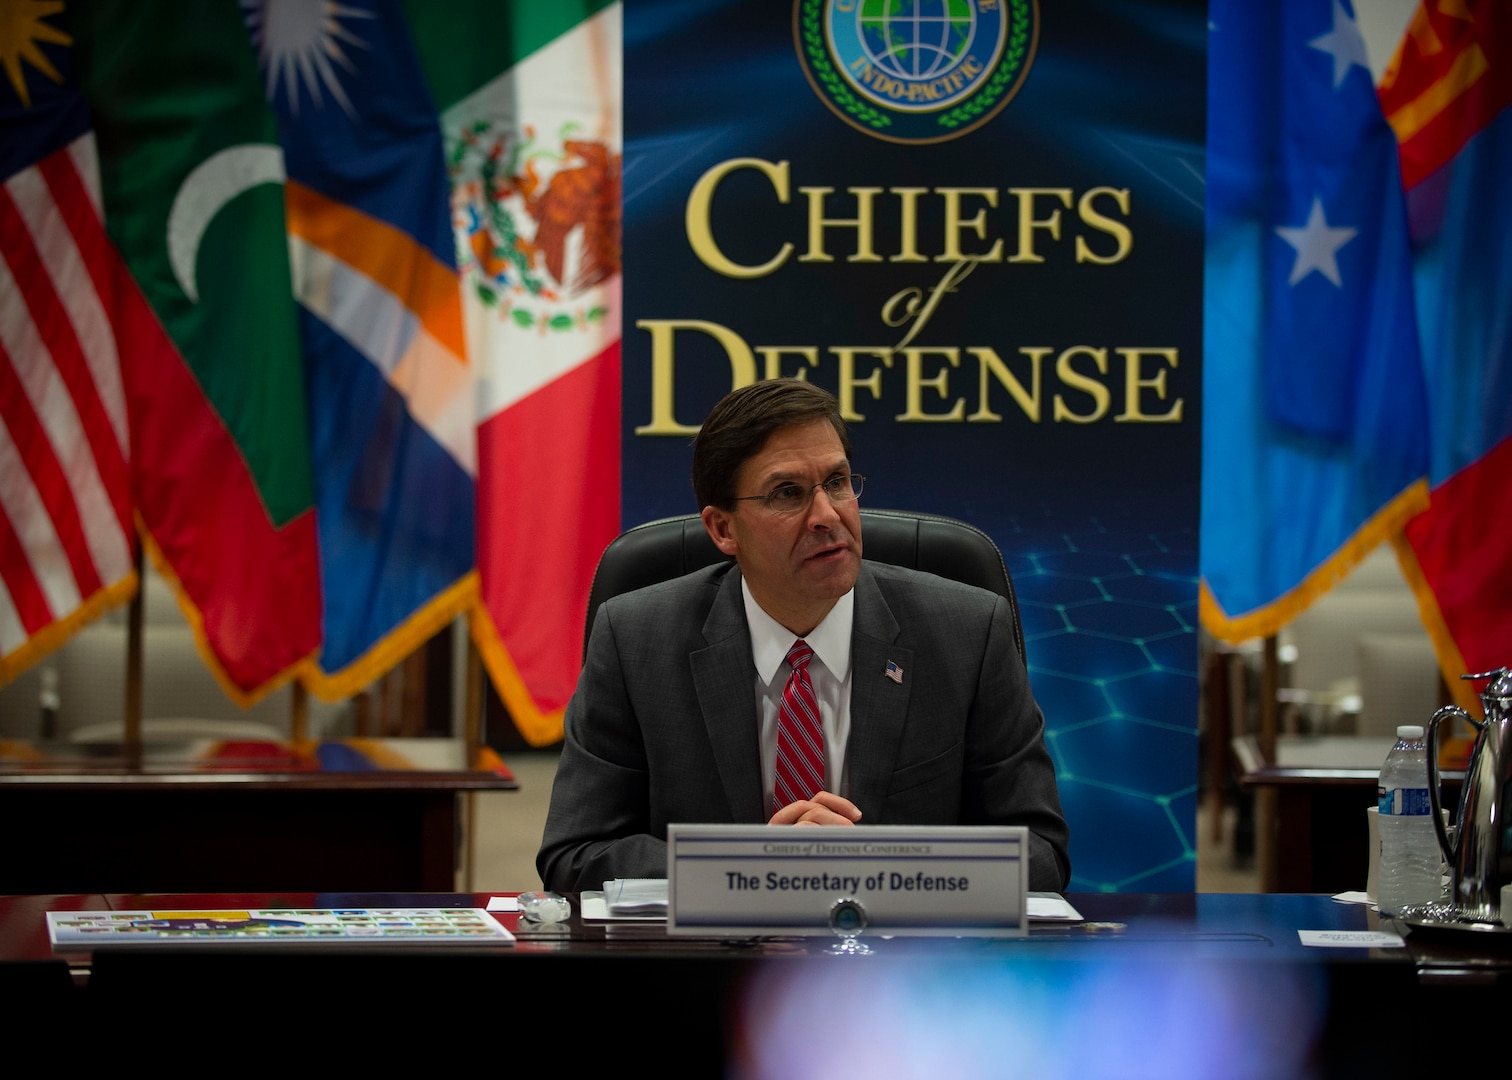 Dr. Mark T. Esper, United States Secretary of Defense